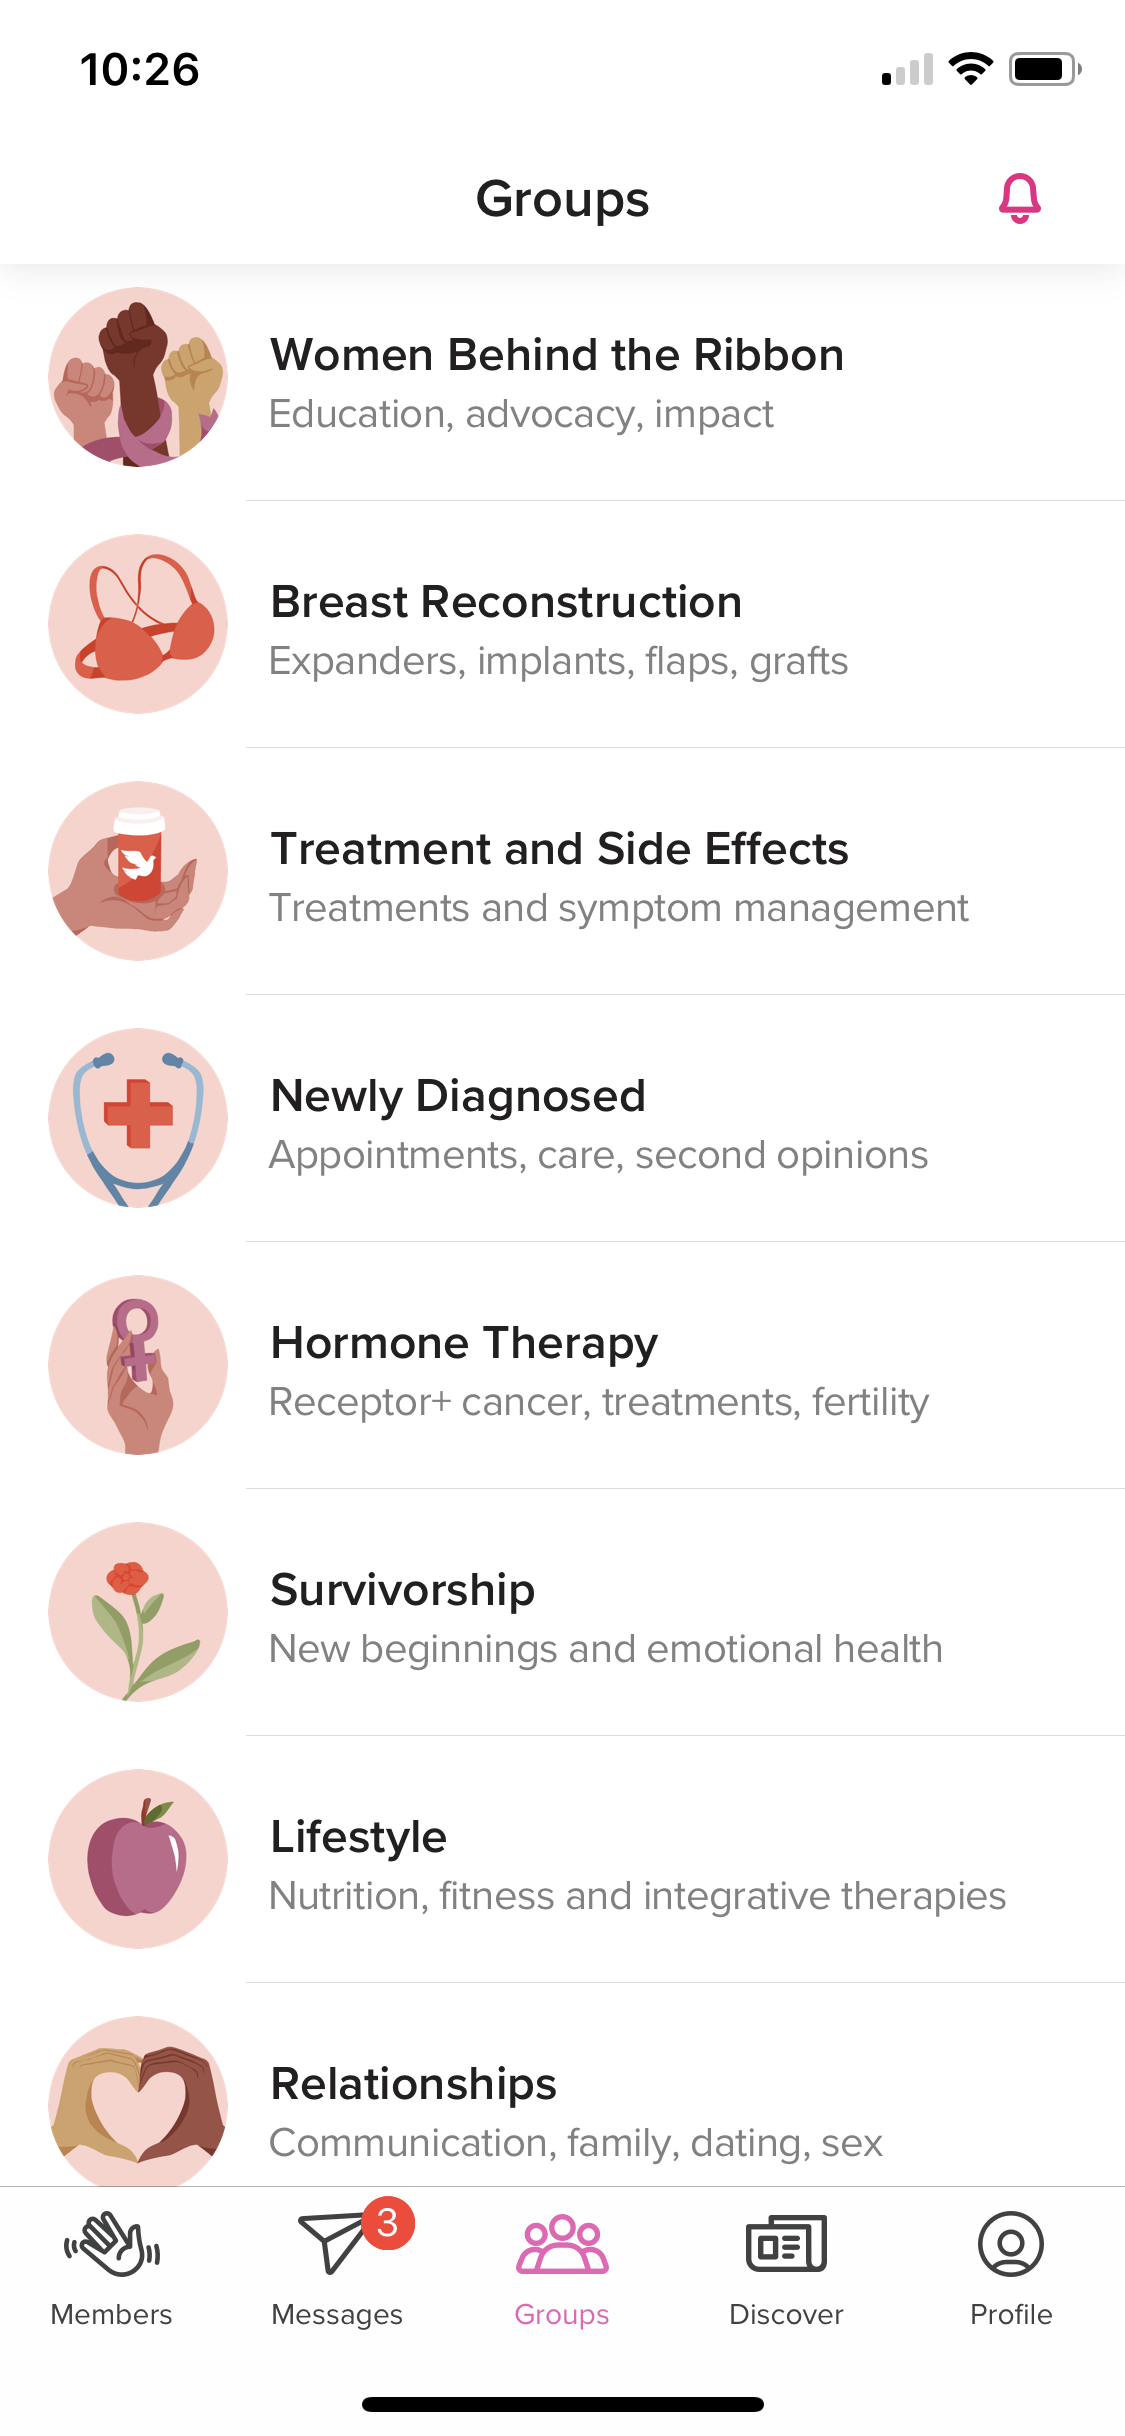 """Email, Instagram, Healthline Breast Cancer App. - I've added the Healthline Breast Cancer App into my rotation of apps that I check every morning. This app has done SO MUCH in terms of bettering my mental and emotional health. I always love connecting with new Breasties on Instagram, but it's sometimes difficult to scroll past everyone else's """"highlight reel"""" while I'm dealing with some low lows, you know?Being able to connect with new Breasties from all over the world, without the distractions of Instagram, is amazing. I've been enjoying the """"Groups"""" aspect of Healthline Breast Cancer App the most!I'm in the midst of reconstruction and, even though my surgeon is super helpful, I like being able to talk to others who have gone through the same surgeries as I am for their first hand knowledge. All my new Breasties have shared empowering photos and insight from their reconstruction experiences in the """"Breast Reconstruction"""" group and it's been so helpful with me as I finish up my own reconstruction and make some big decisions.I've also been super active in the """"Career and Cancer"""" and """"Survivorship"""" groups, as I try to move forward to the next chapter of my life.If you want to join me on the Healthline Breast Cancer App and take advantage of this amazing resource, you can download the free app HERE. Don't forget; it's available on iPhone AND Android! Let me know what you think of the app in the comments below!"""